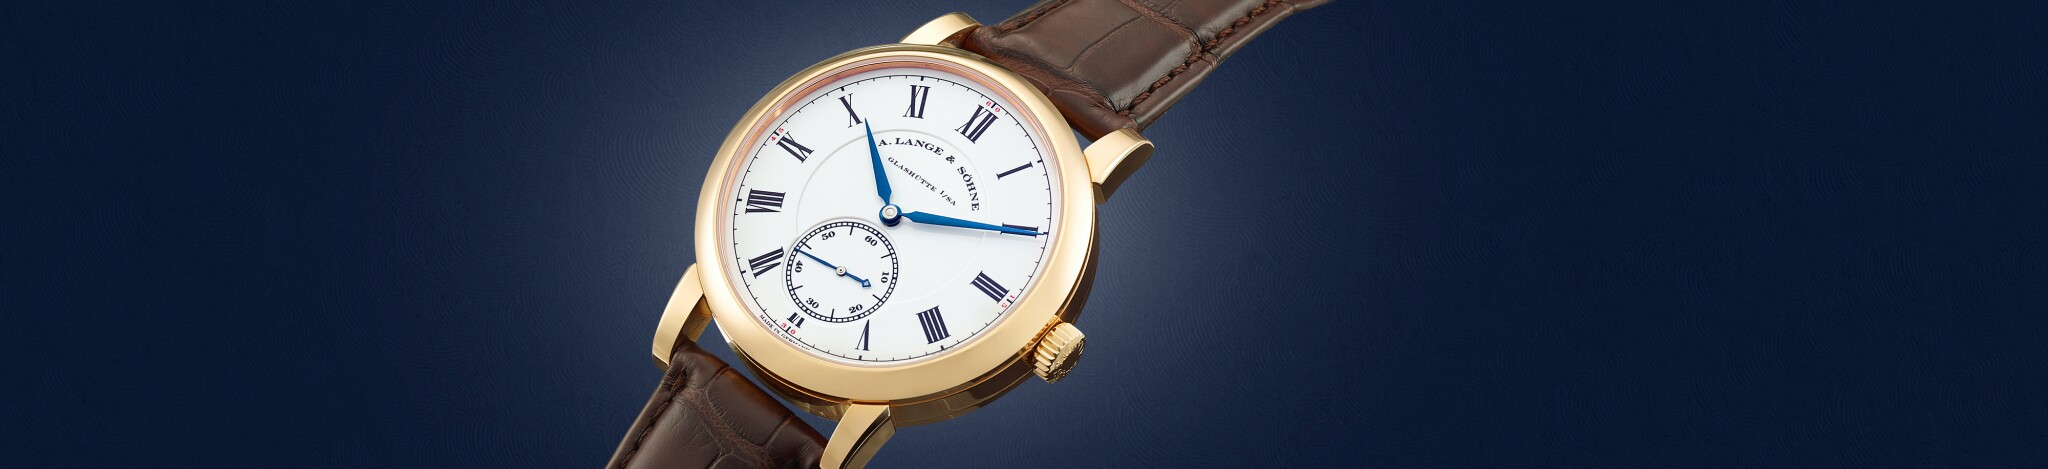 Watches Weekly | A. Lange & Söhne and No Reserve